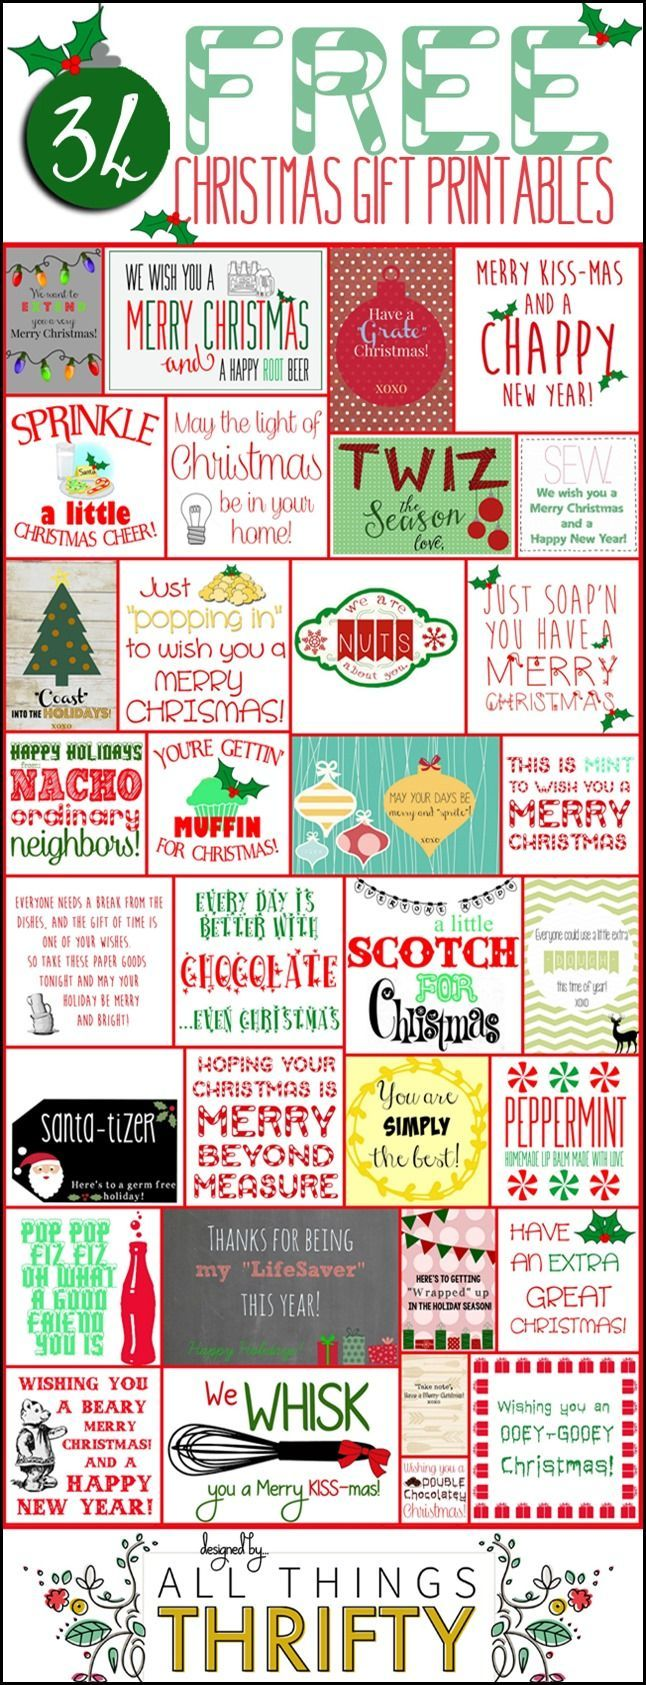 Gift tags? Social Language? Take a look through the sheet and think about cutting out the ones that are appropriate for use with your middle school/high school social language group. Make predictions about the gifts, why is it funny? What other meanings are there? What is being alluded to?: